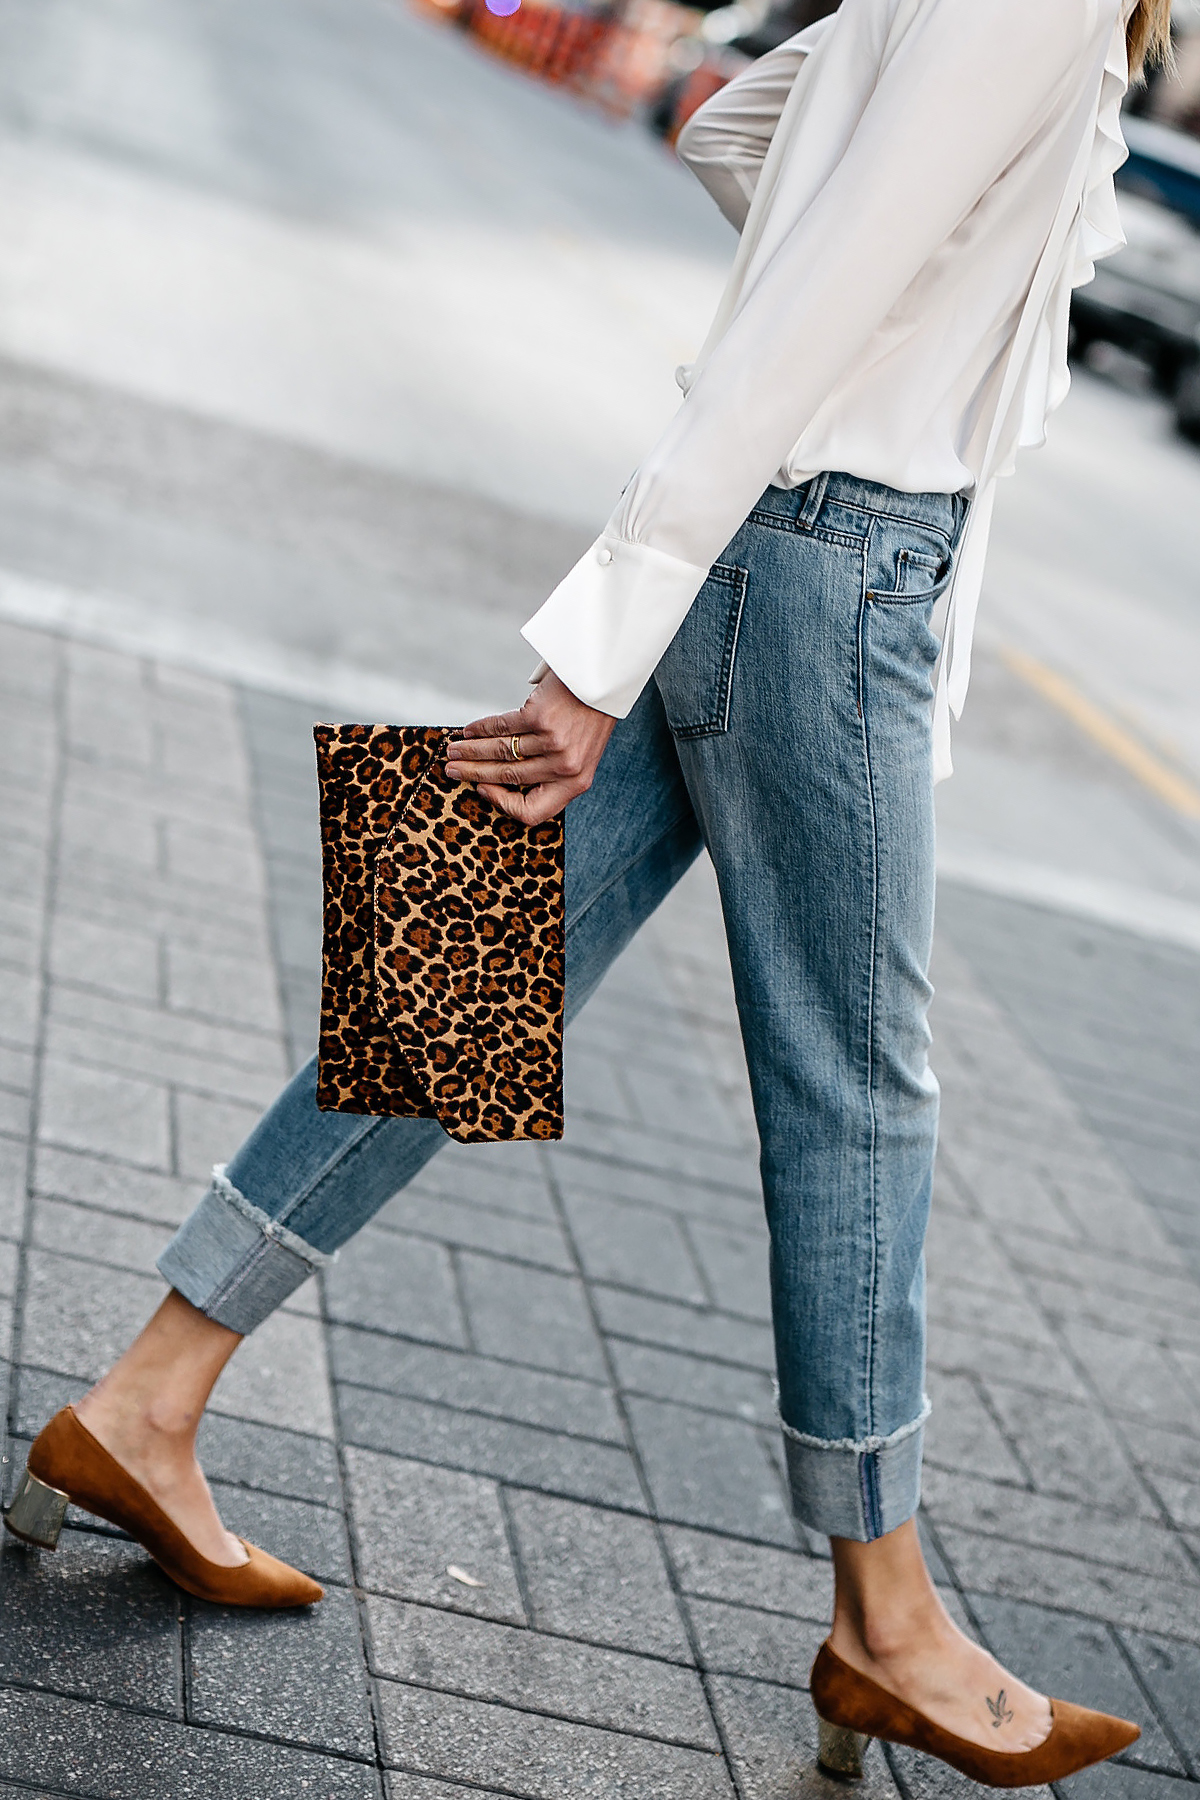 Woman Wearing Ann Taylor White Ruffle Blouse Ann Taylor Girlfriend Jeans Leaopard Clutch Tan Suede Heels Fashion jackson Dallas Blogger Fashion Blogger Street Stylte